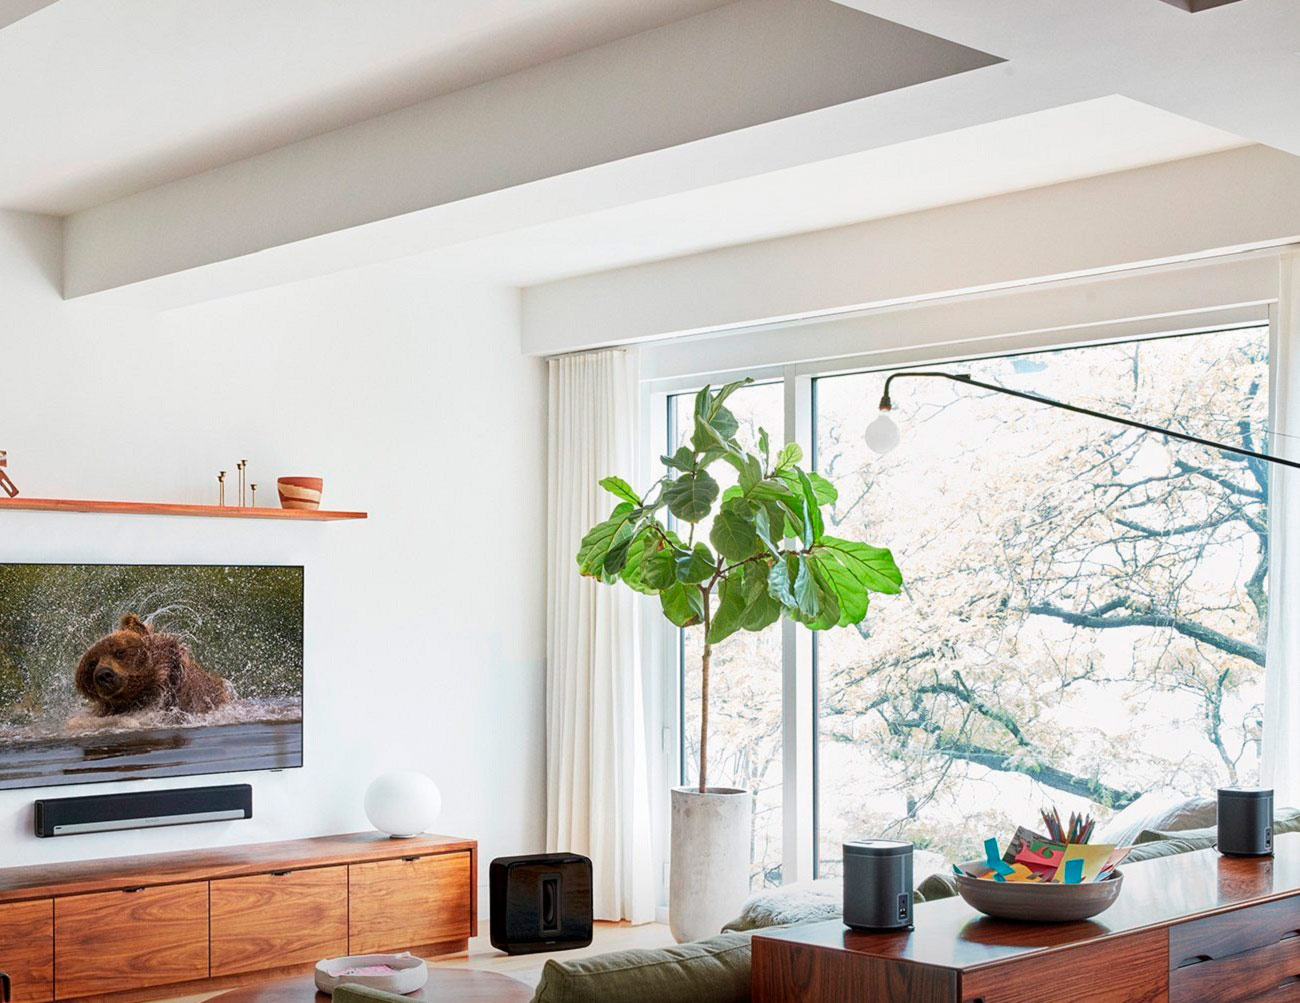 How to create the best home speaker system in your living room - Sonos 02